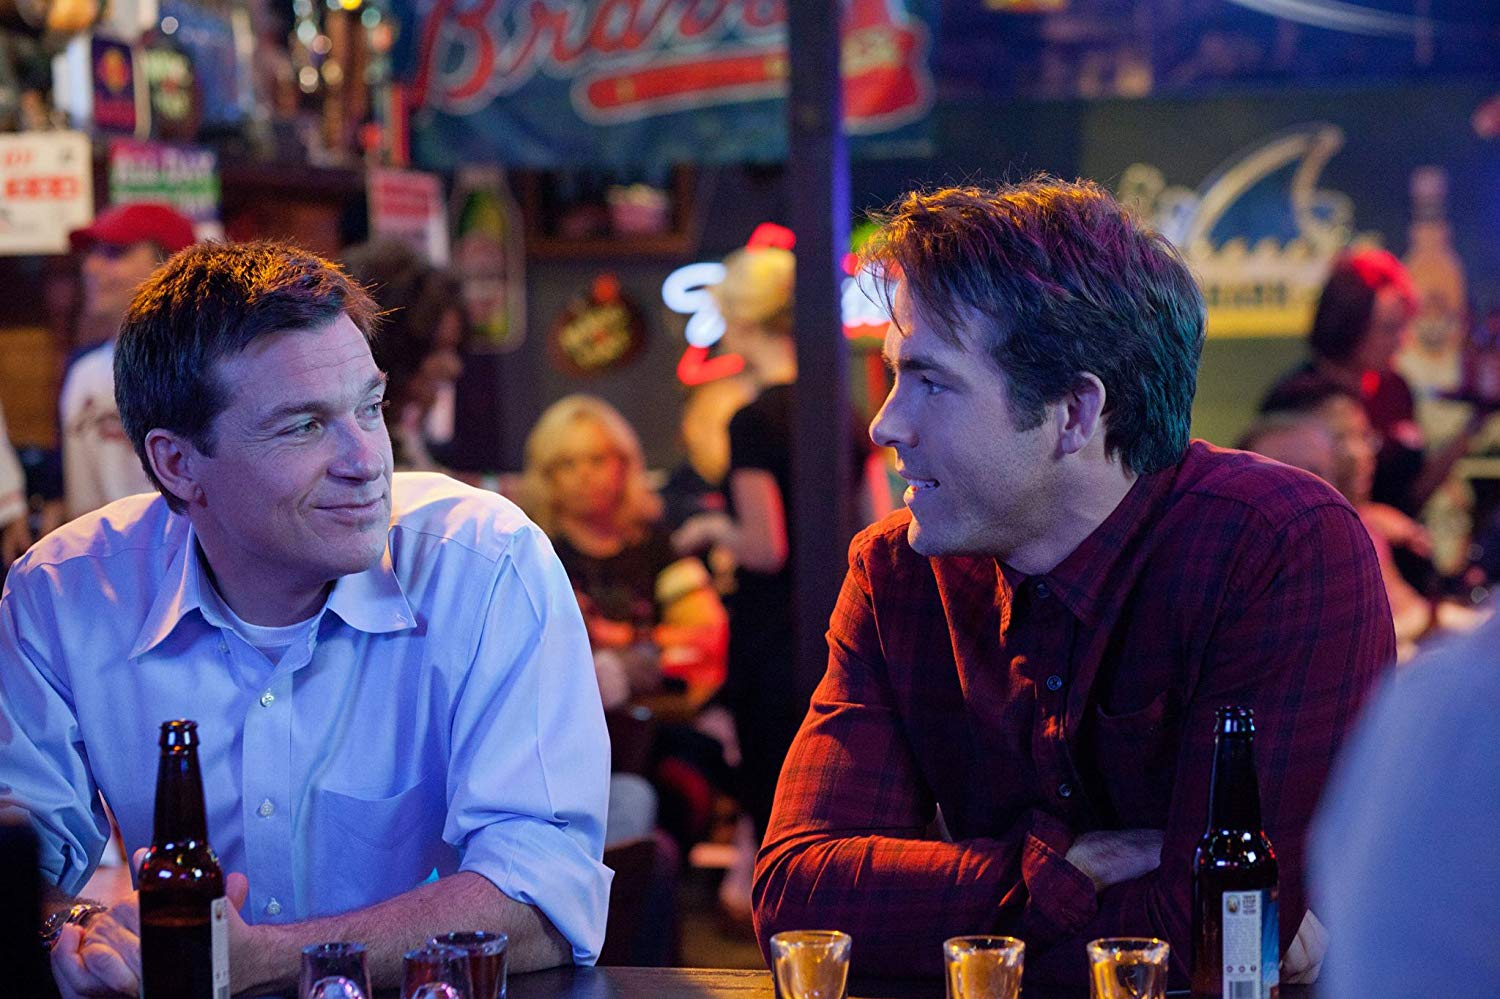 Best friends (l to r) family guy Jason Bateman and party Ryan Reynolds in The Change-Up (2011)